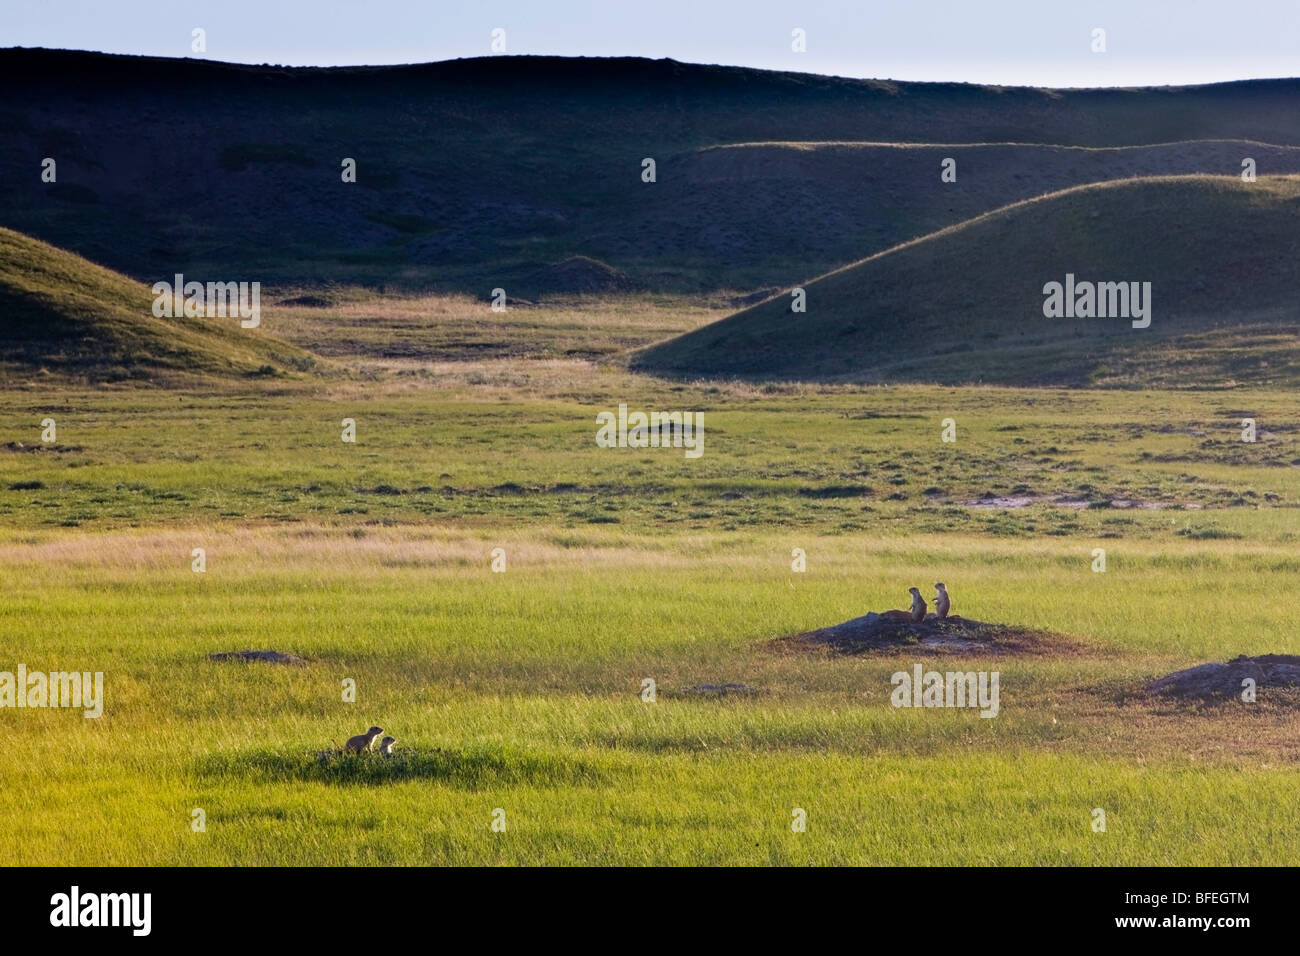 Black-tailed prairie dogs (Cynomys ludovicianus) in Dog Town along Frenchman River Valley Ecotour Route in West - Stock Image